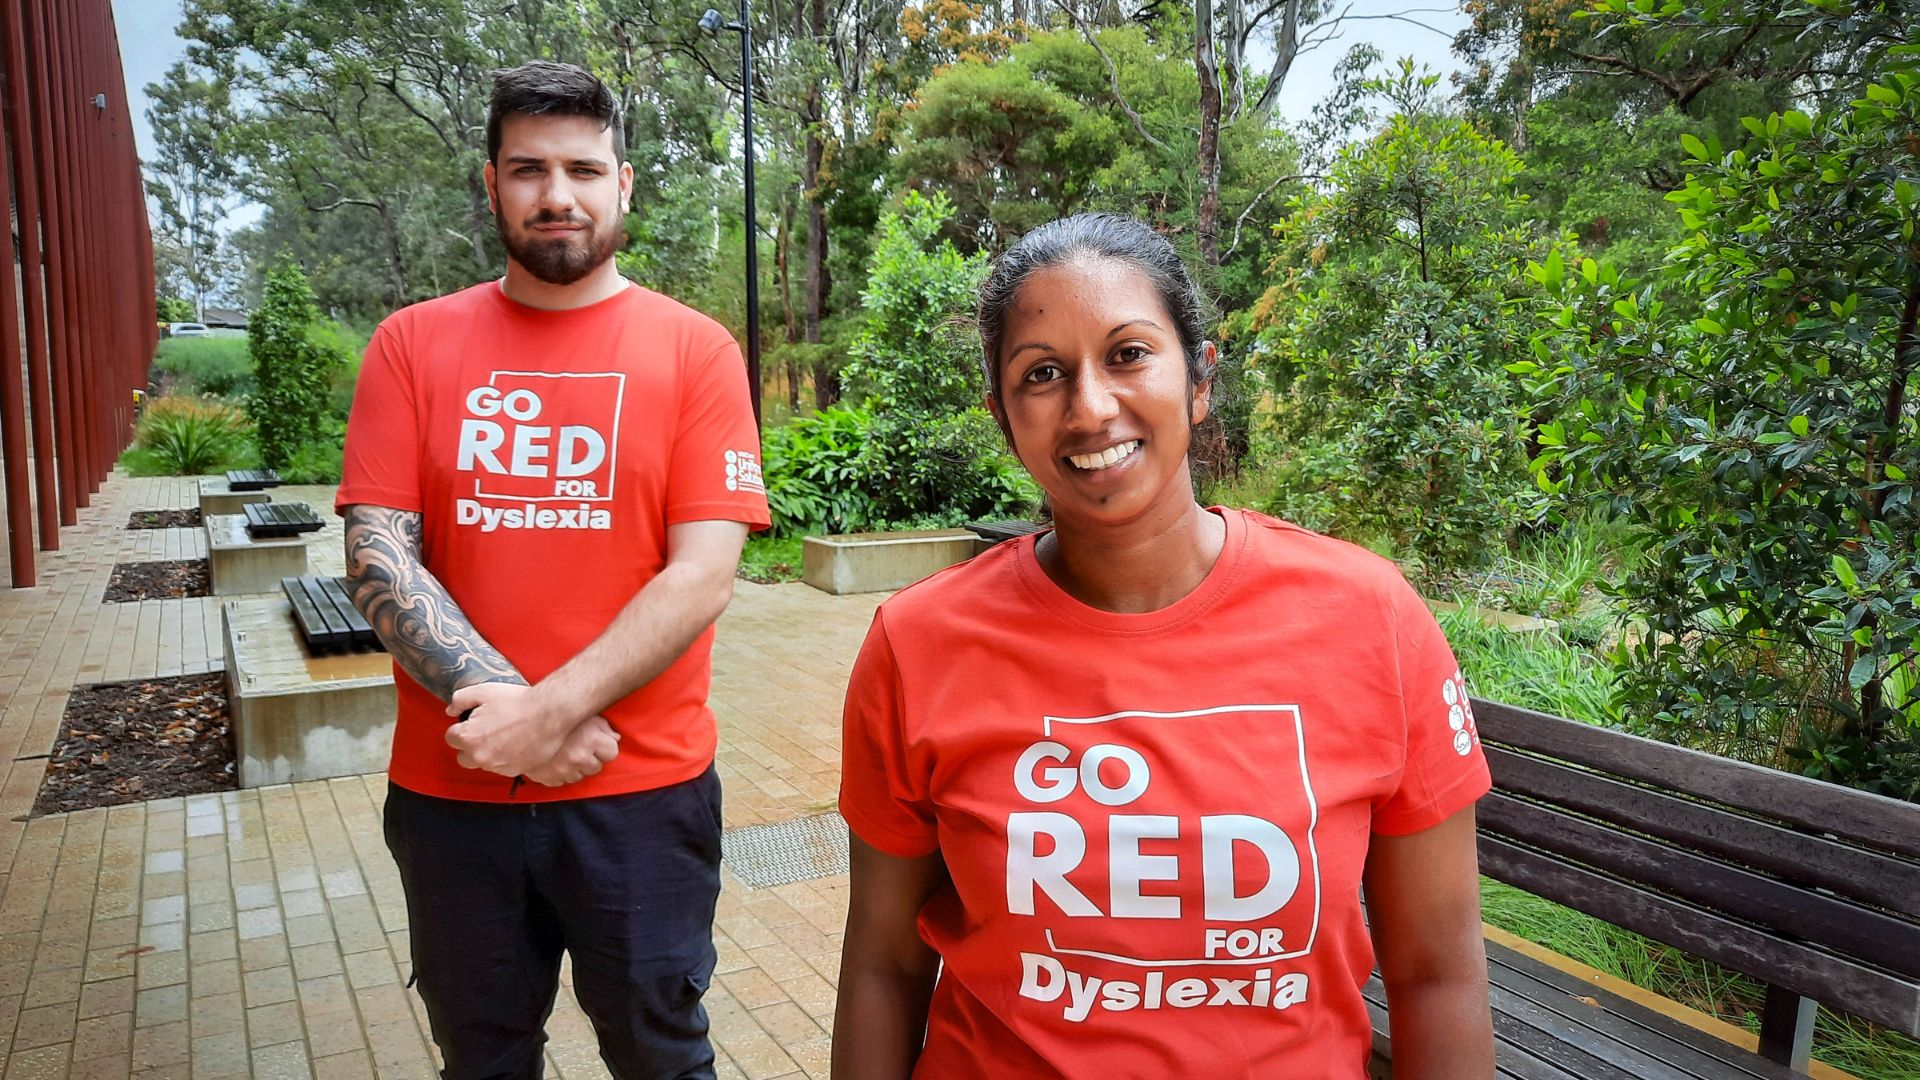 Don't give up. Dyslexia support at university decoded